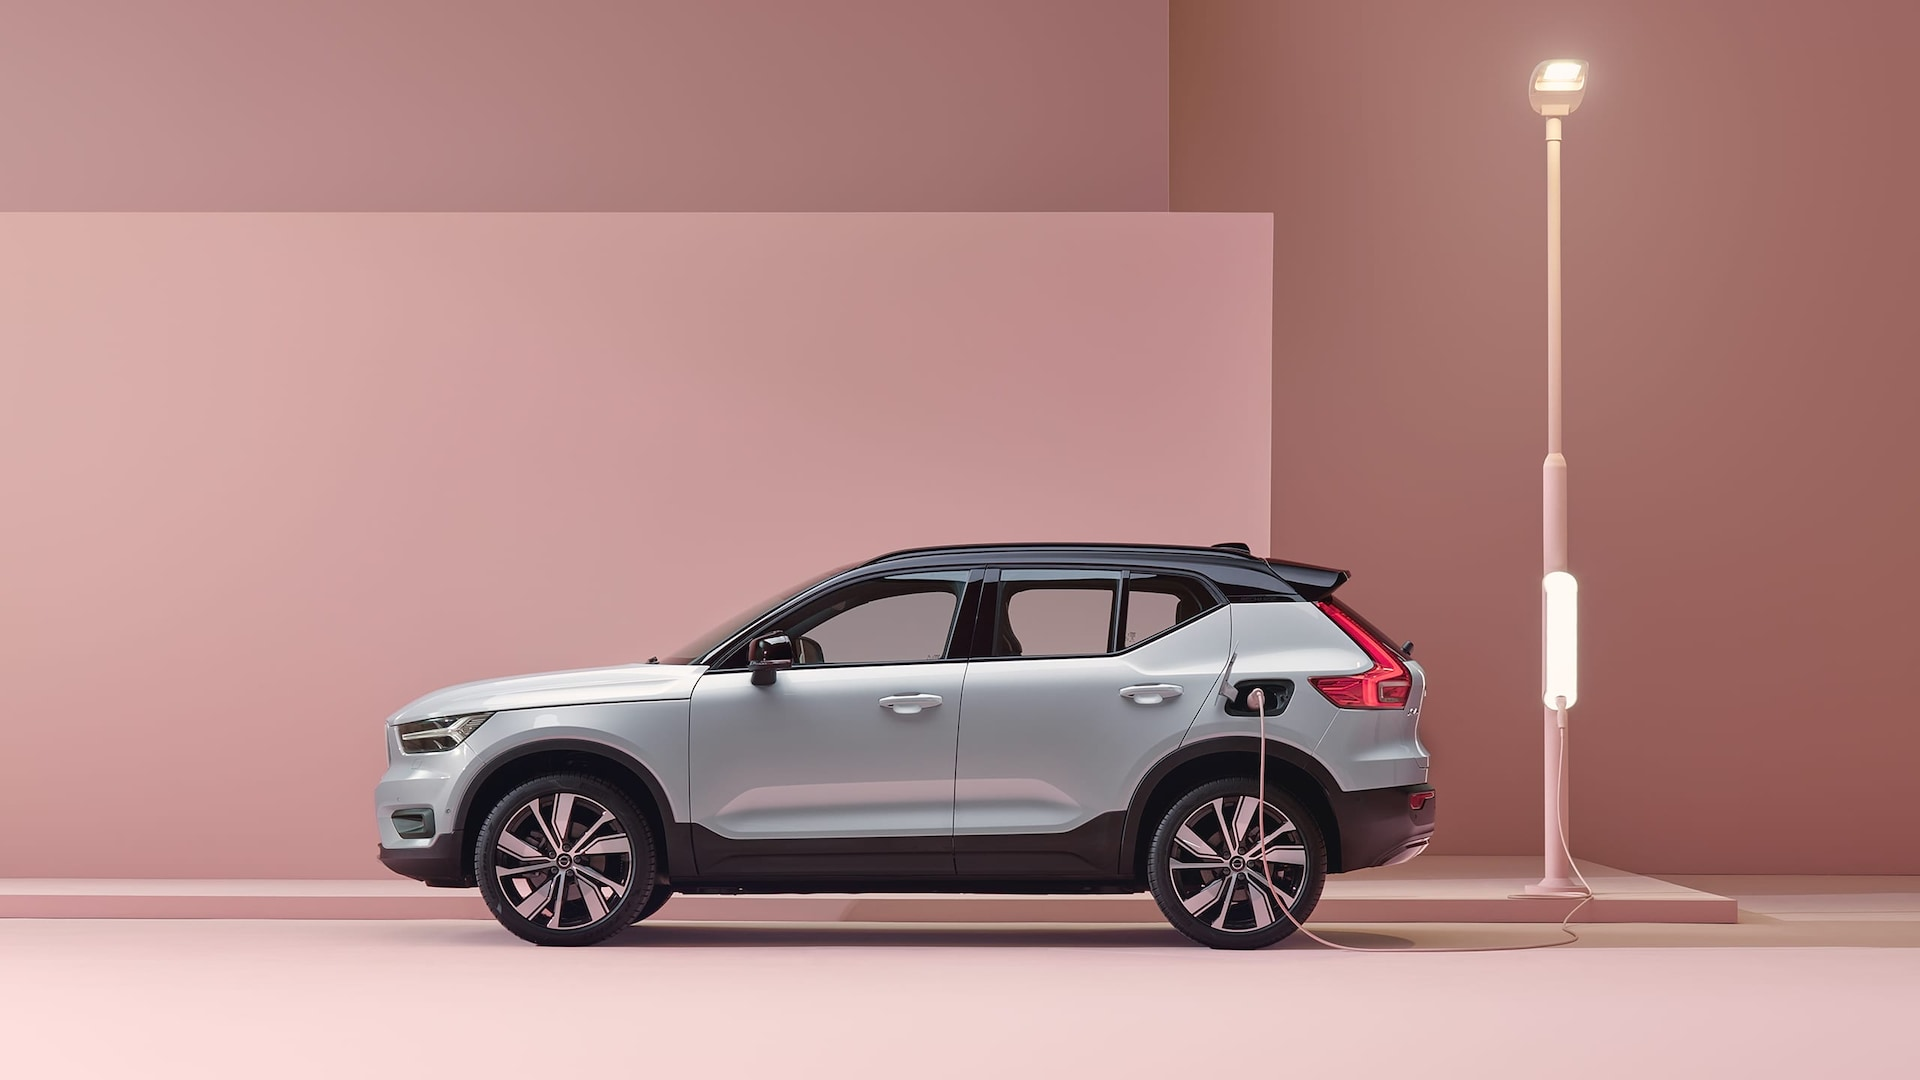 A grey Volvo XC40 full electric SUV being charged in a pink city